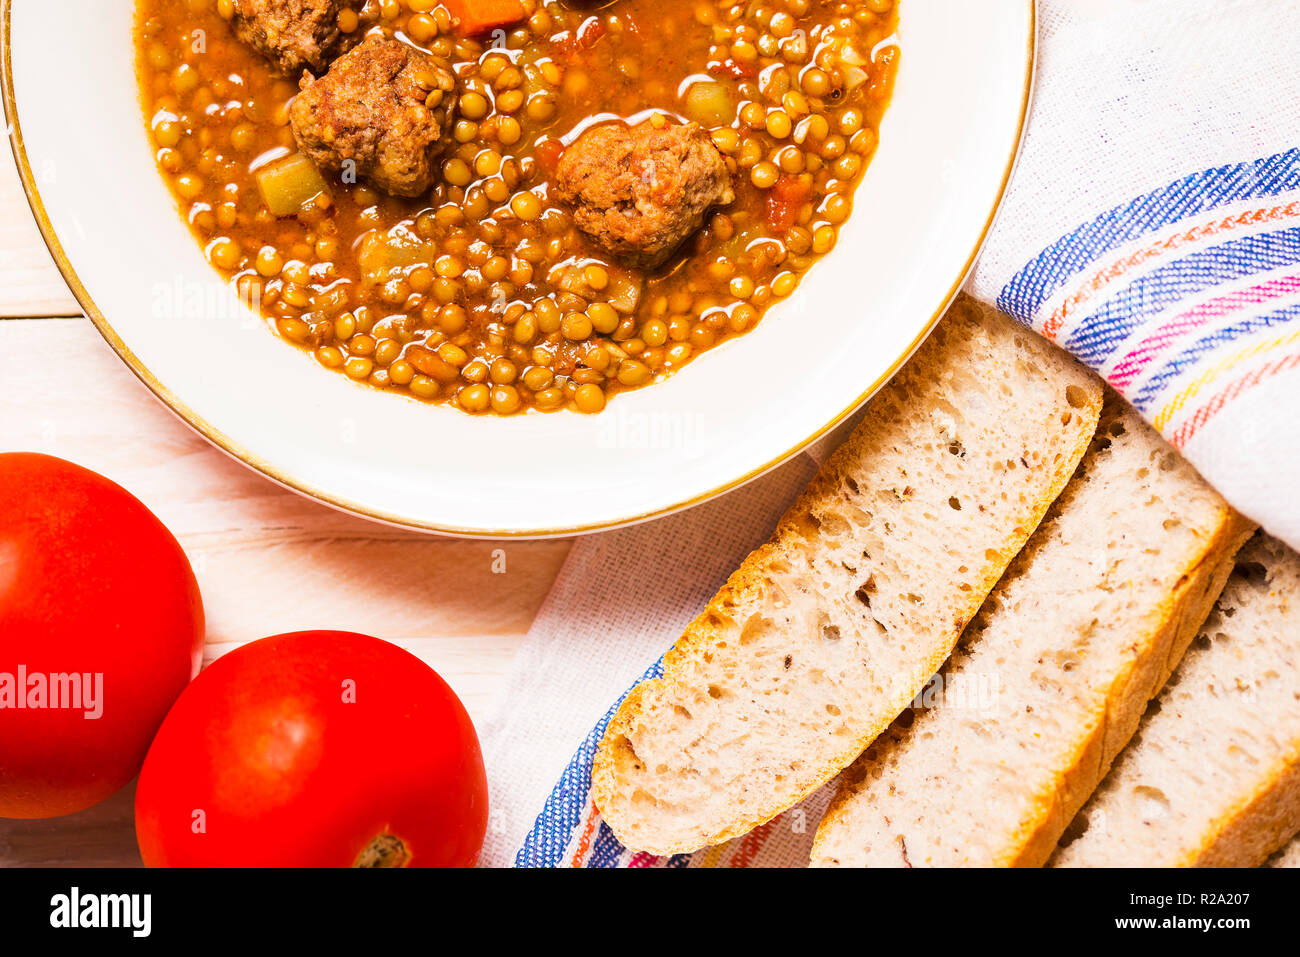 Lentil soup with fricandel, tomatoes and bread - Stock Image